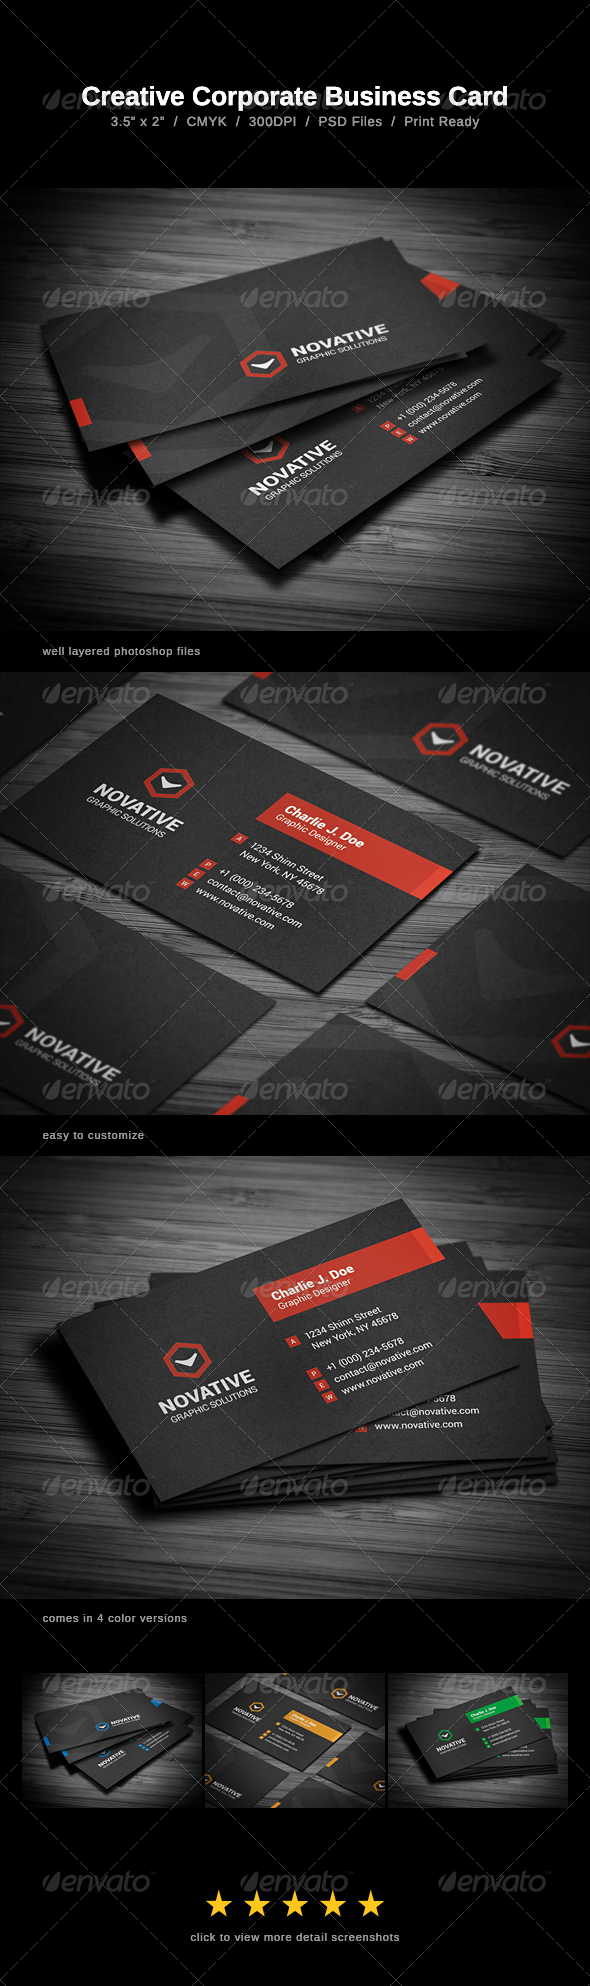 GraphicRiver Creative Corporate Business Card 6750183